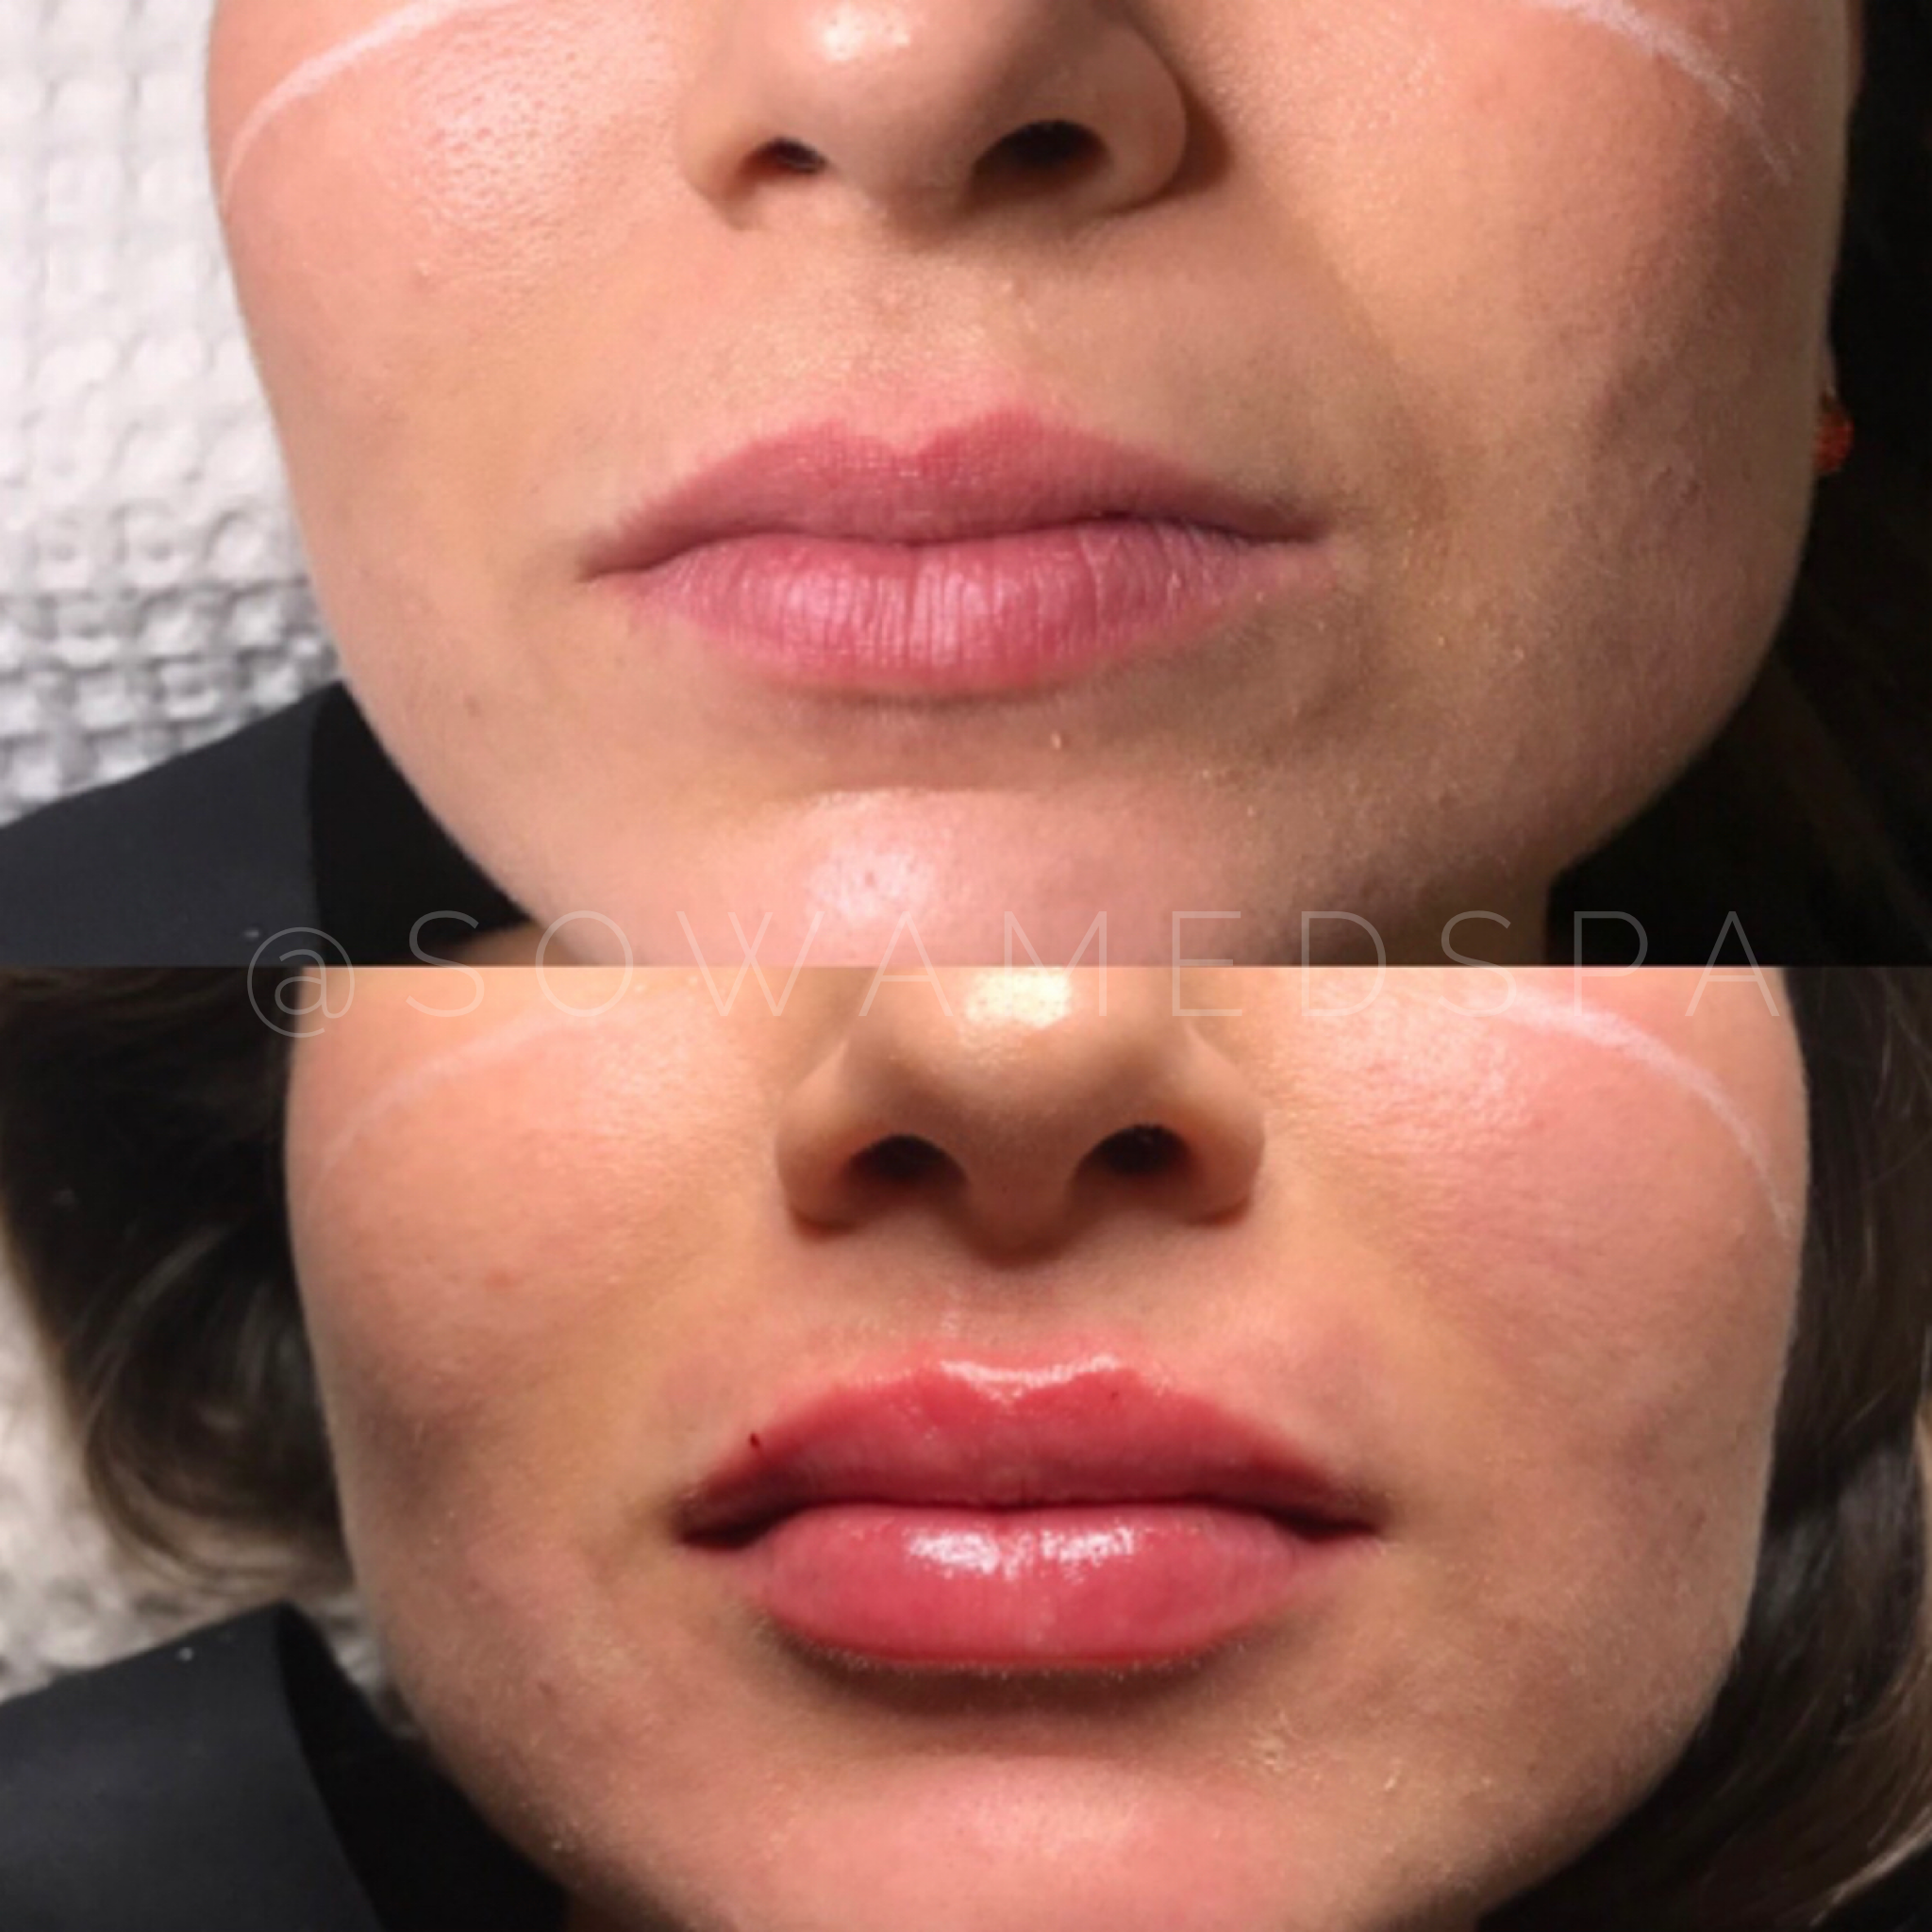 A close-up of a woman after receiving lip fillers_lip fillers before and after